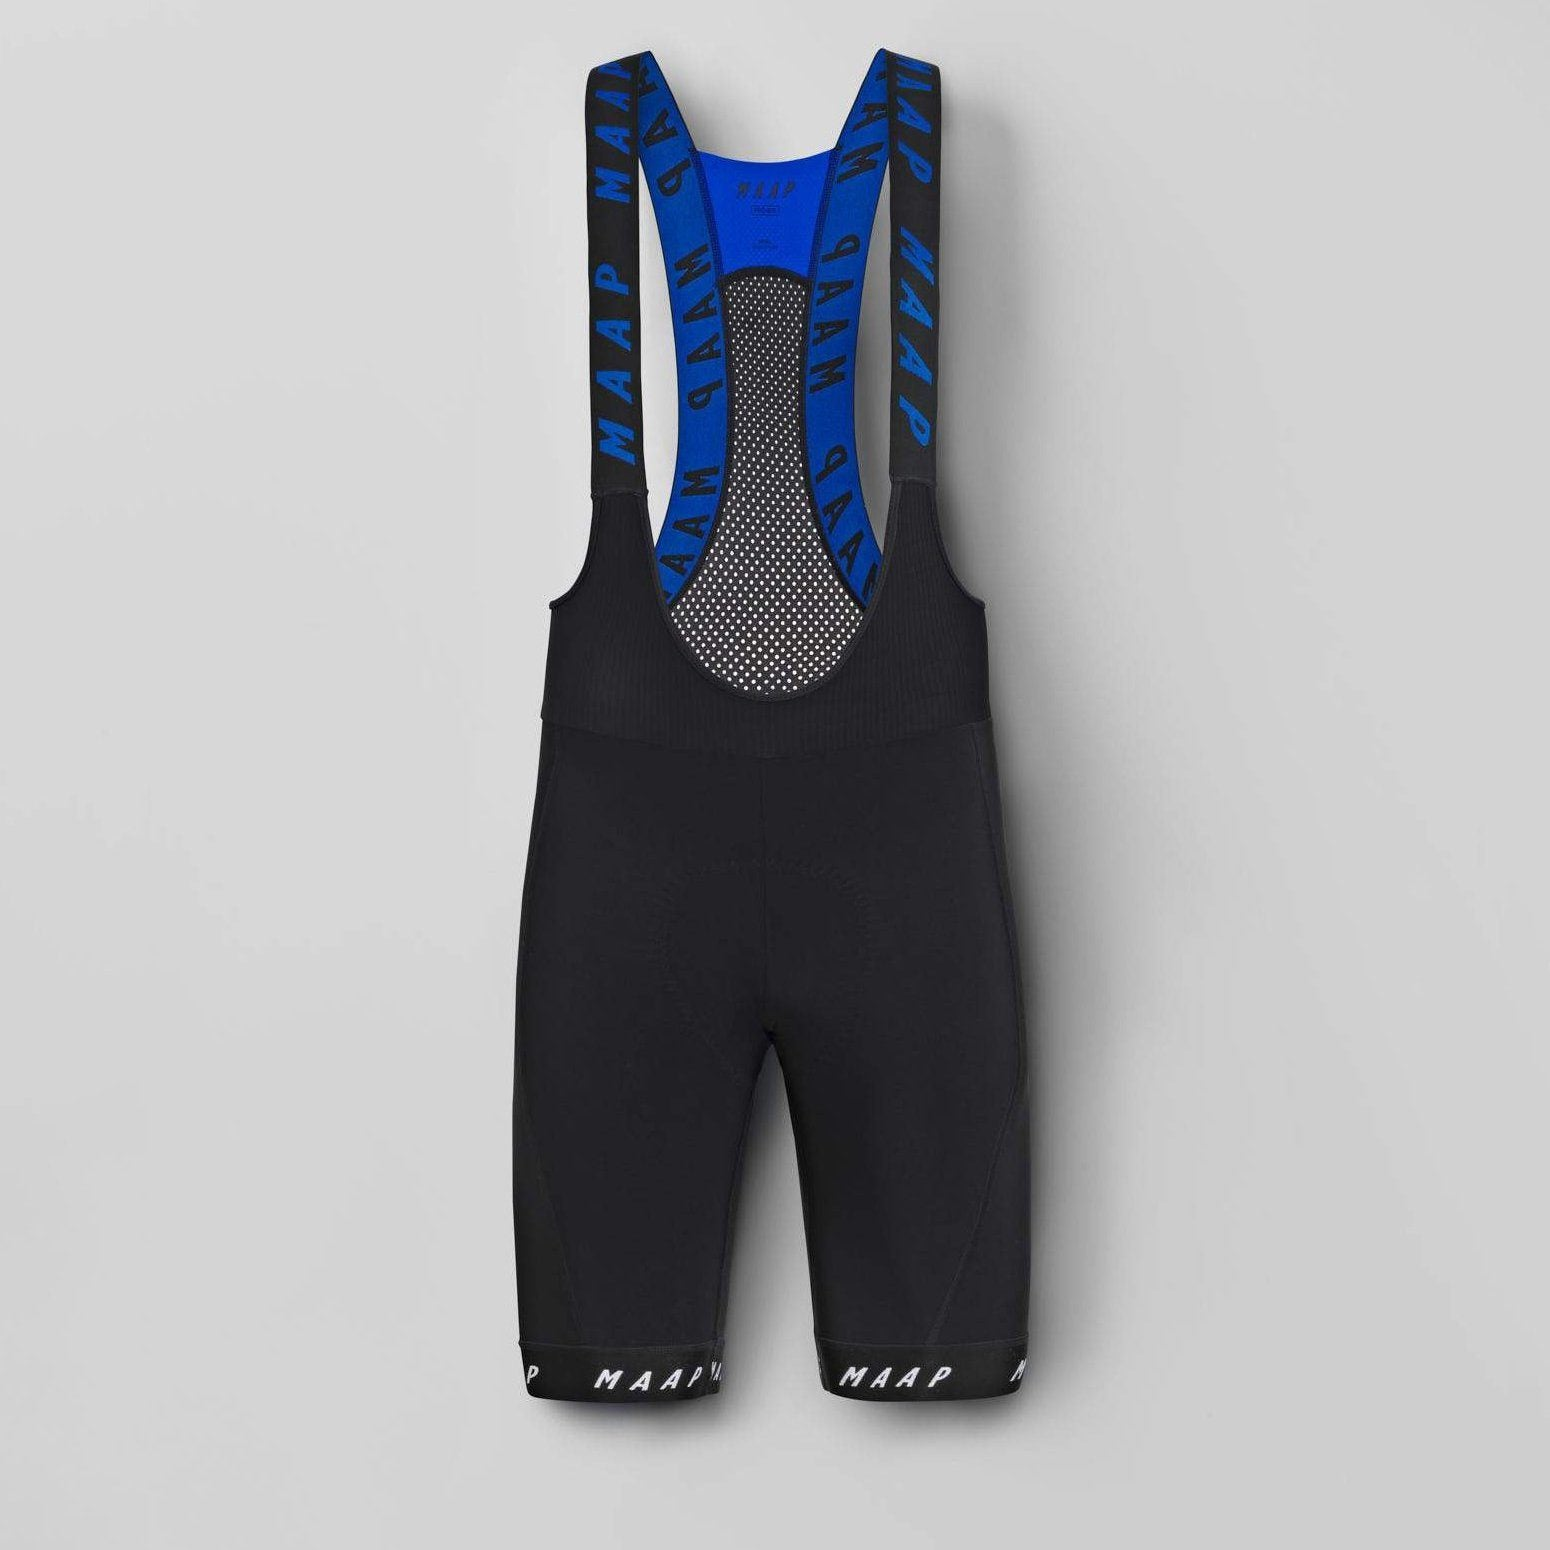 Pro Bib Short - Black Bib Shorts MAAP Black XS